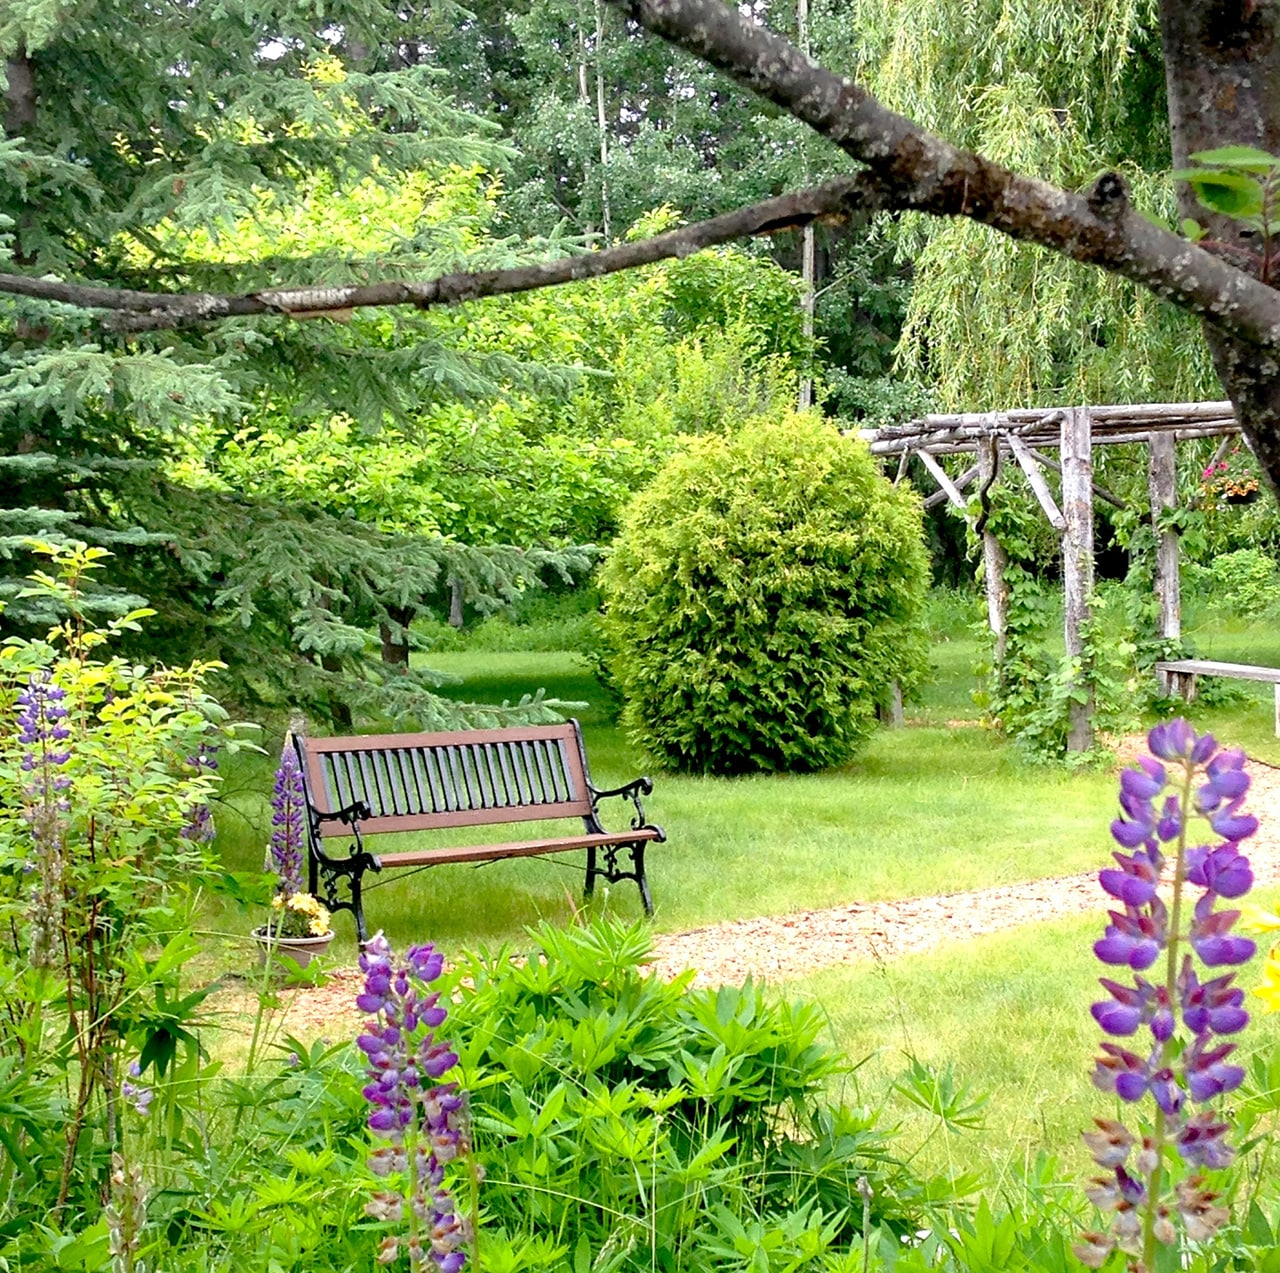 Gardens and Views and Lots of Space to Relax   The lodge is surrounded by beautiful gardens, with flowers in bloom throughout the spring, summer and fall. Find one of our chairs or benches and relax for as long as you'd like.